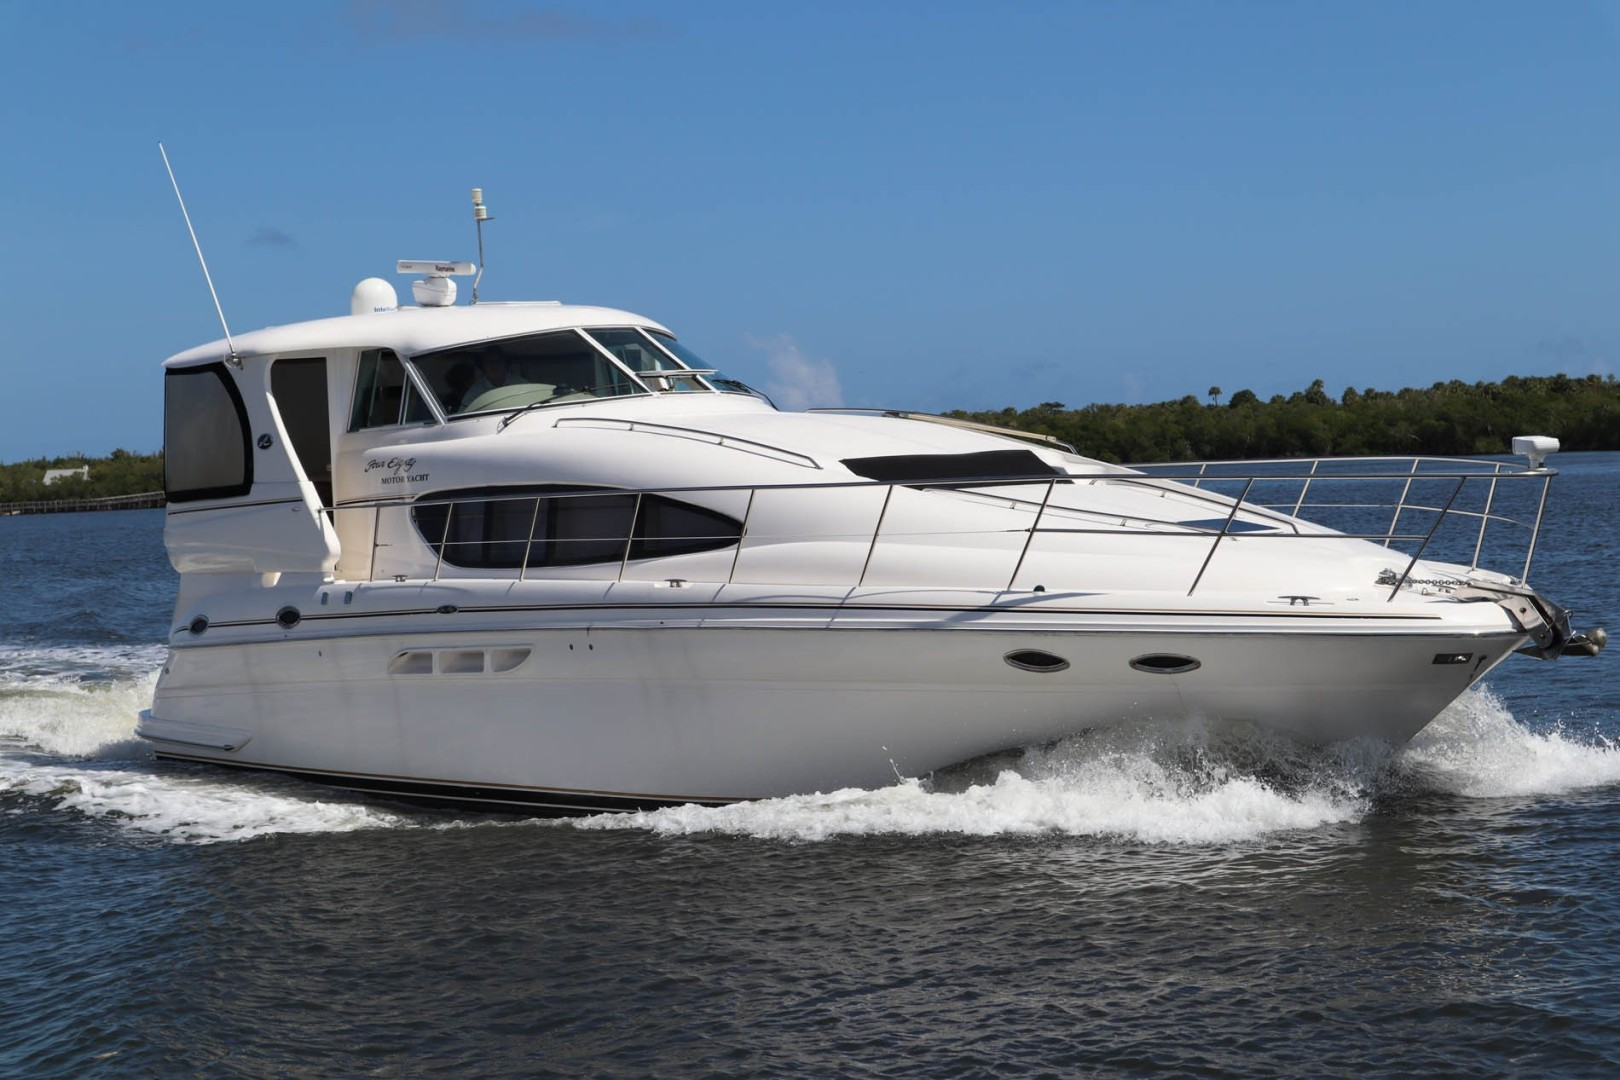 Sea Ray-480 Motor Yacht 2002-Fofo Fort Pierce-Florida-United States-Starboard Side-1647772 | Thumbnail